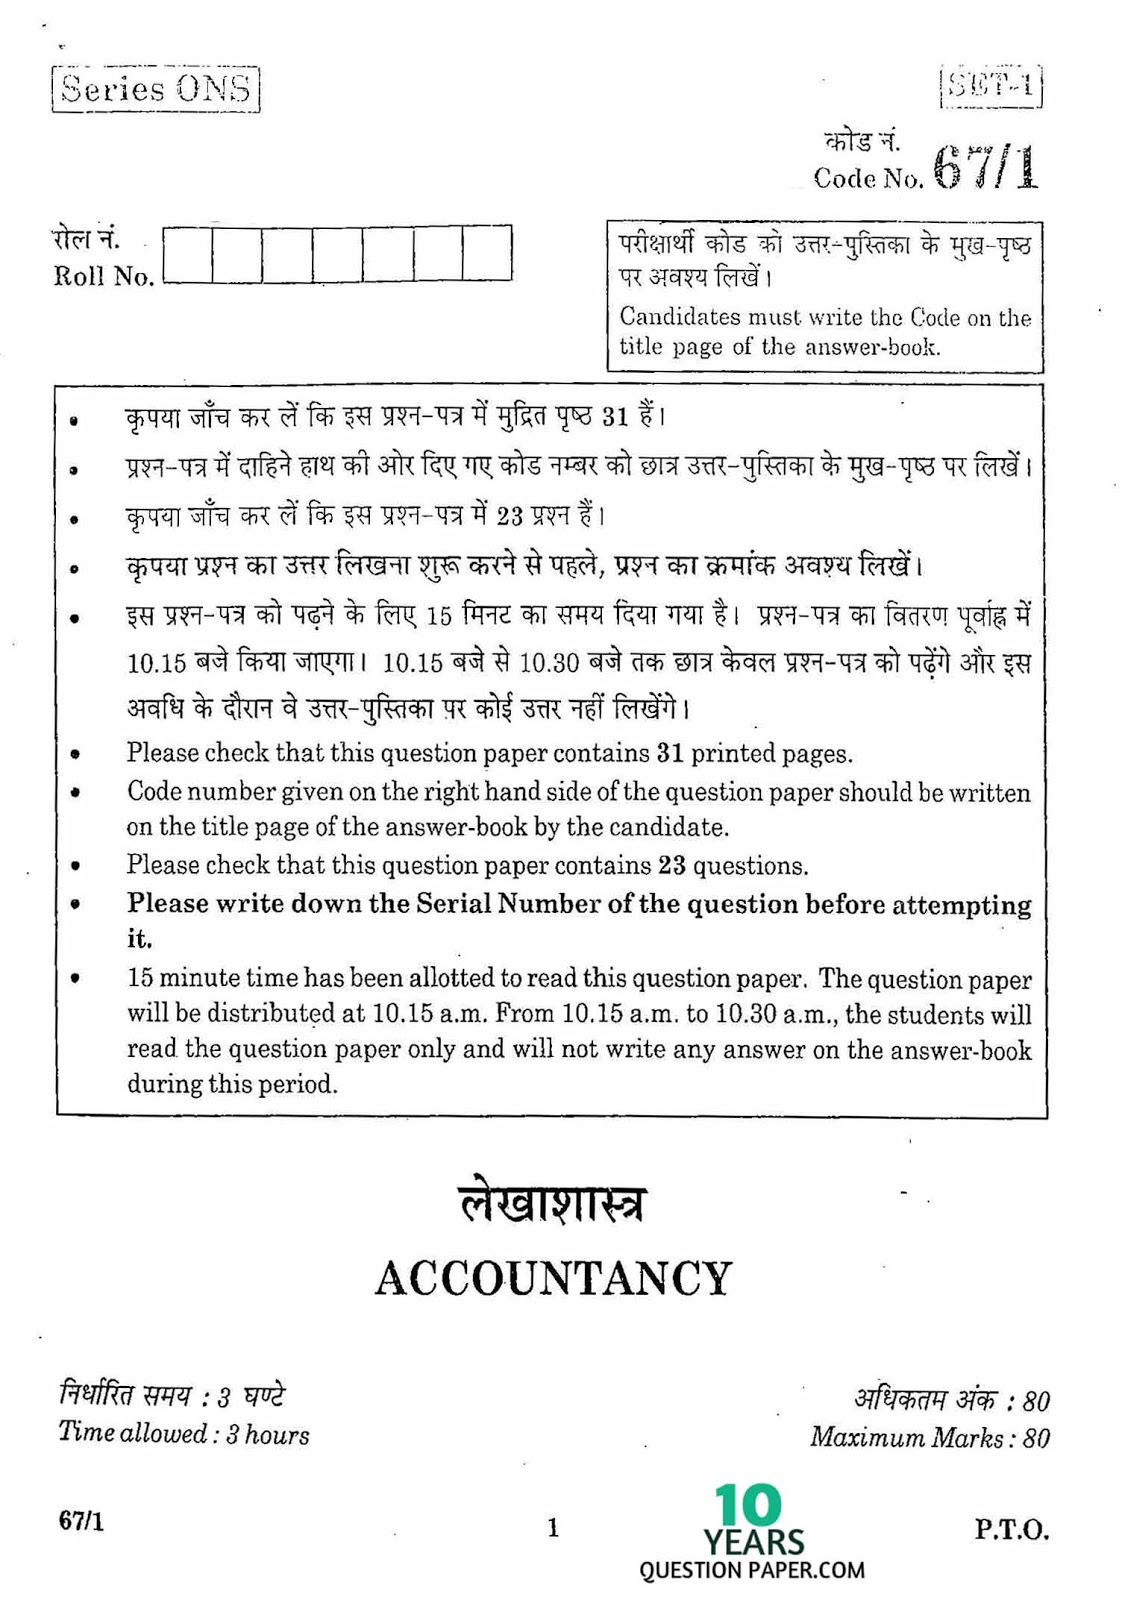 Cbse 2016 accountancy class 12 board question paper set 1 10 cbse class 12th 2016 accountancy question paper malvernweather Choice Image